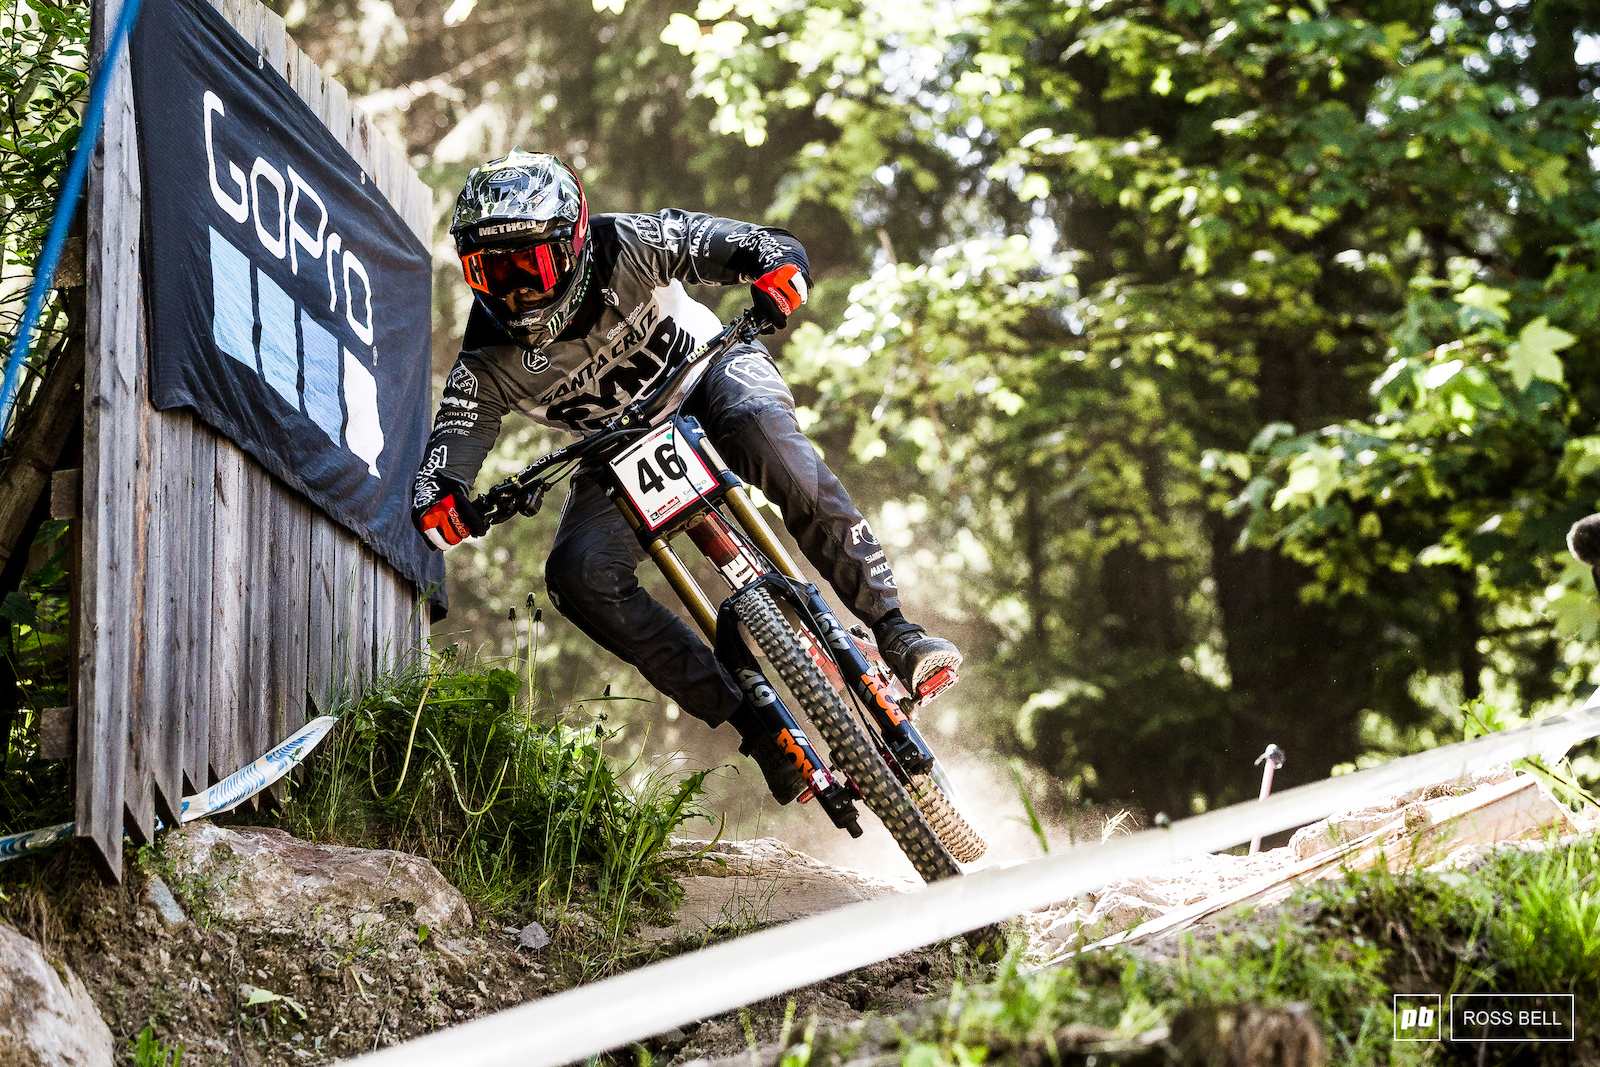 That s more like it from Luca Shaw. He got steadily quicker as the track went on ending up in 9th.